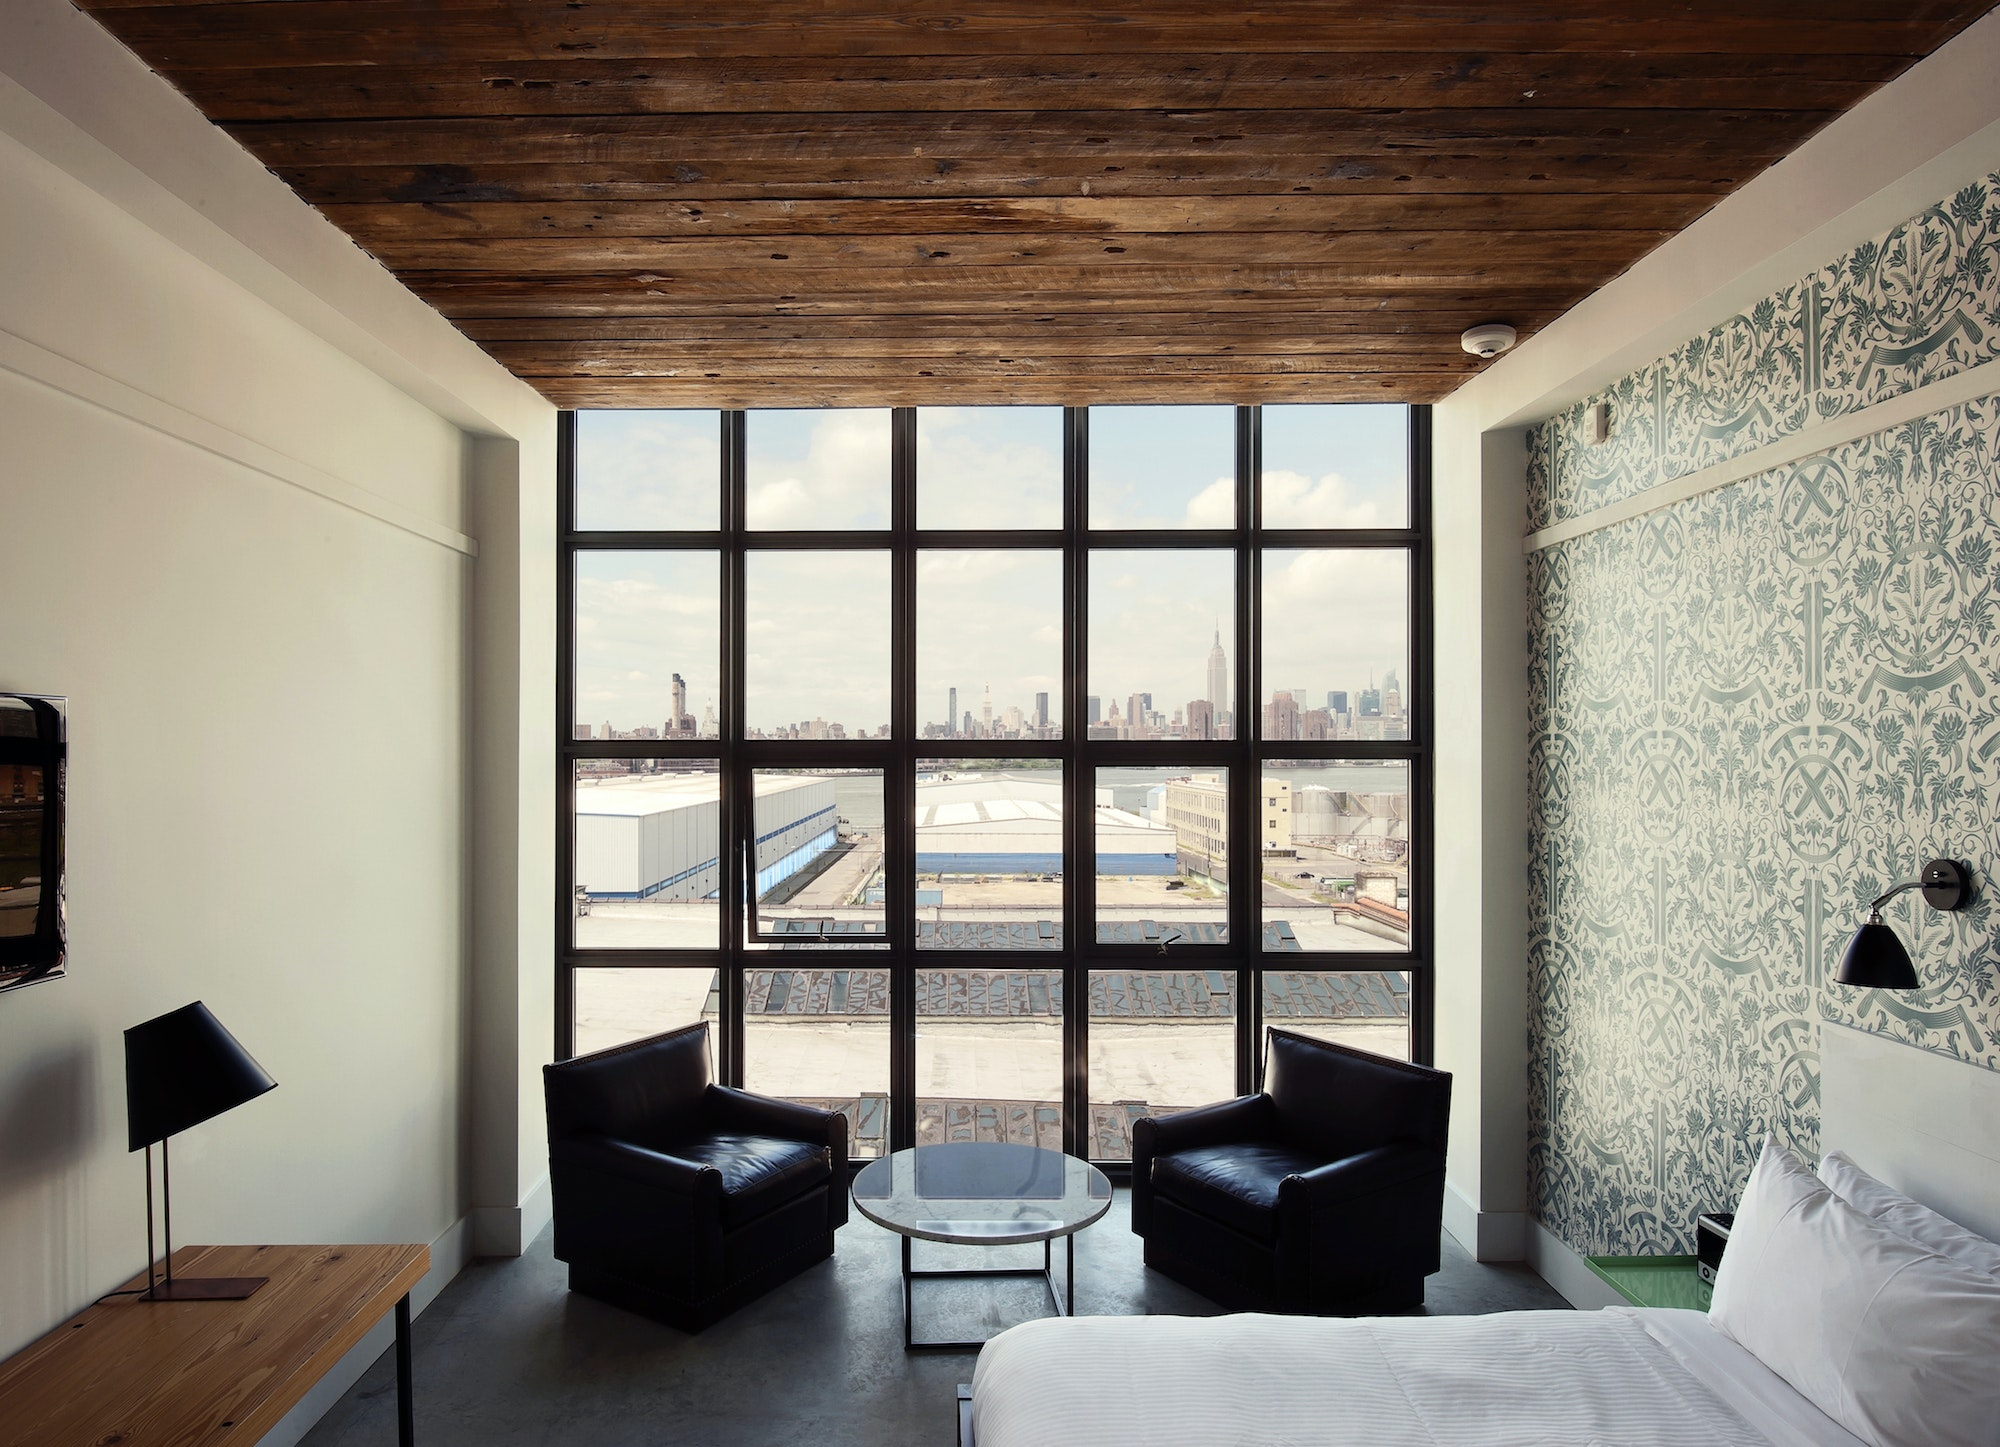 Brooklyn's waterfront Wythe Hotel combines reclaimed materials with modern interior design.